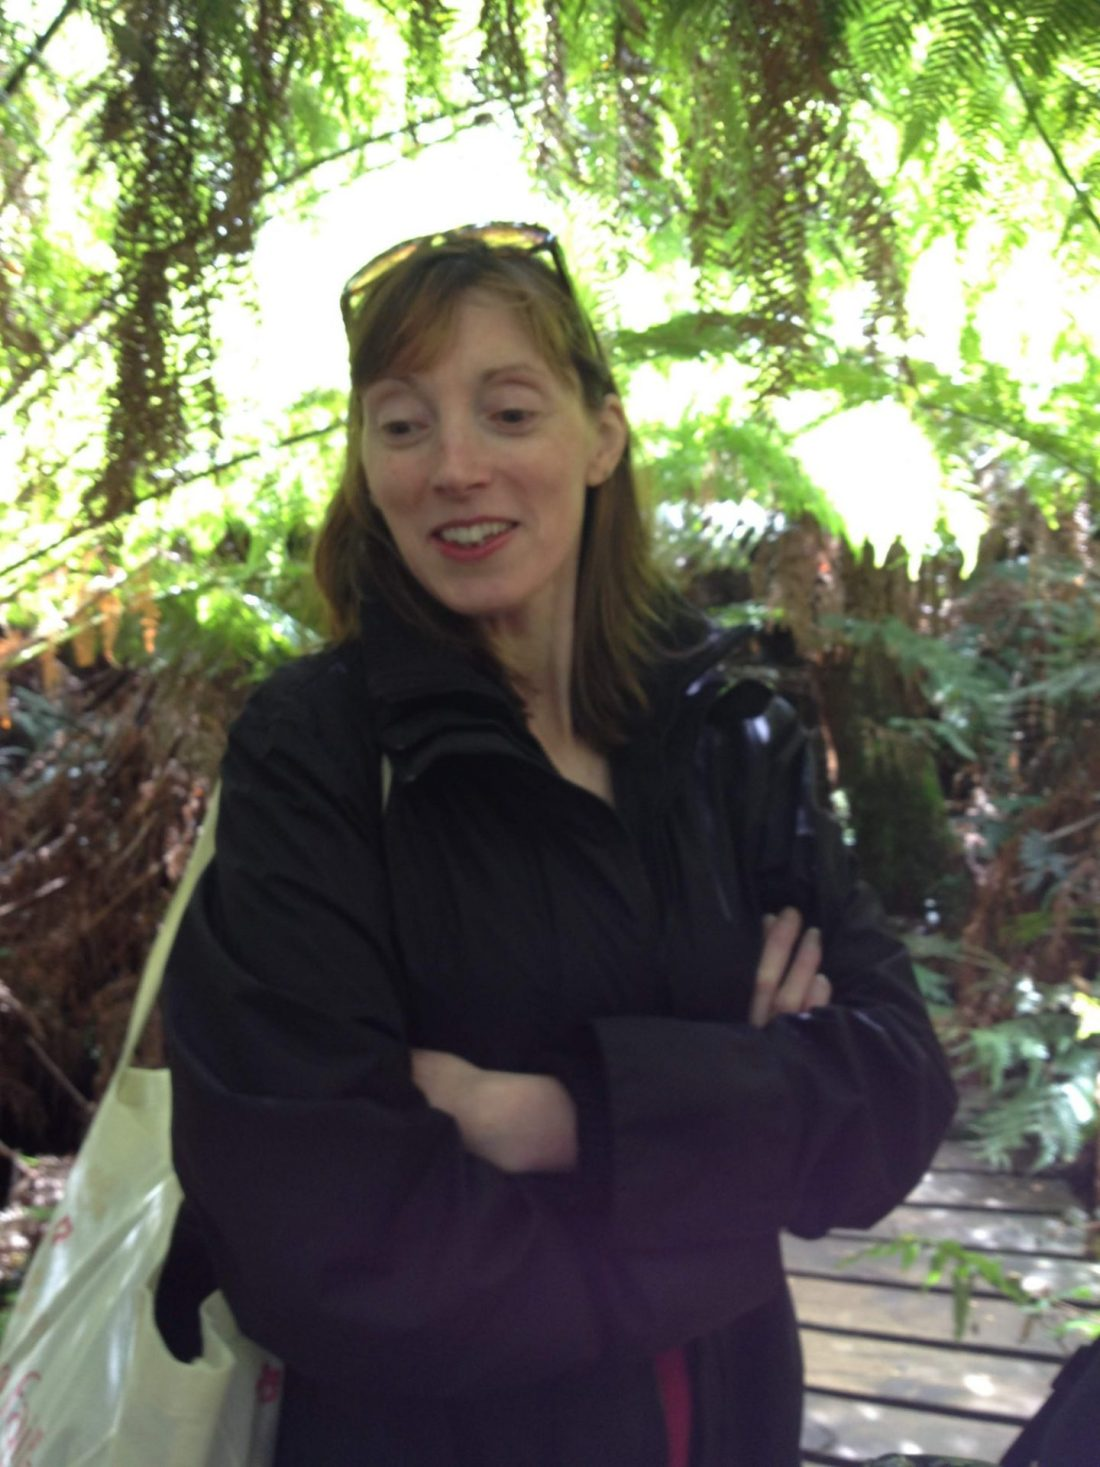 Mum in the rainforest